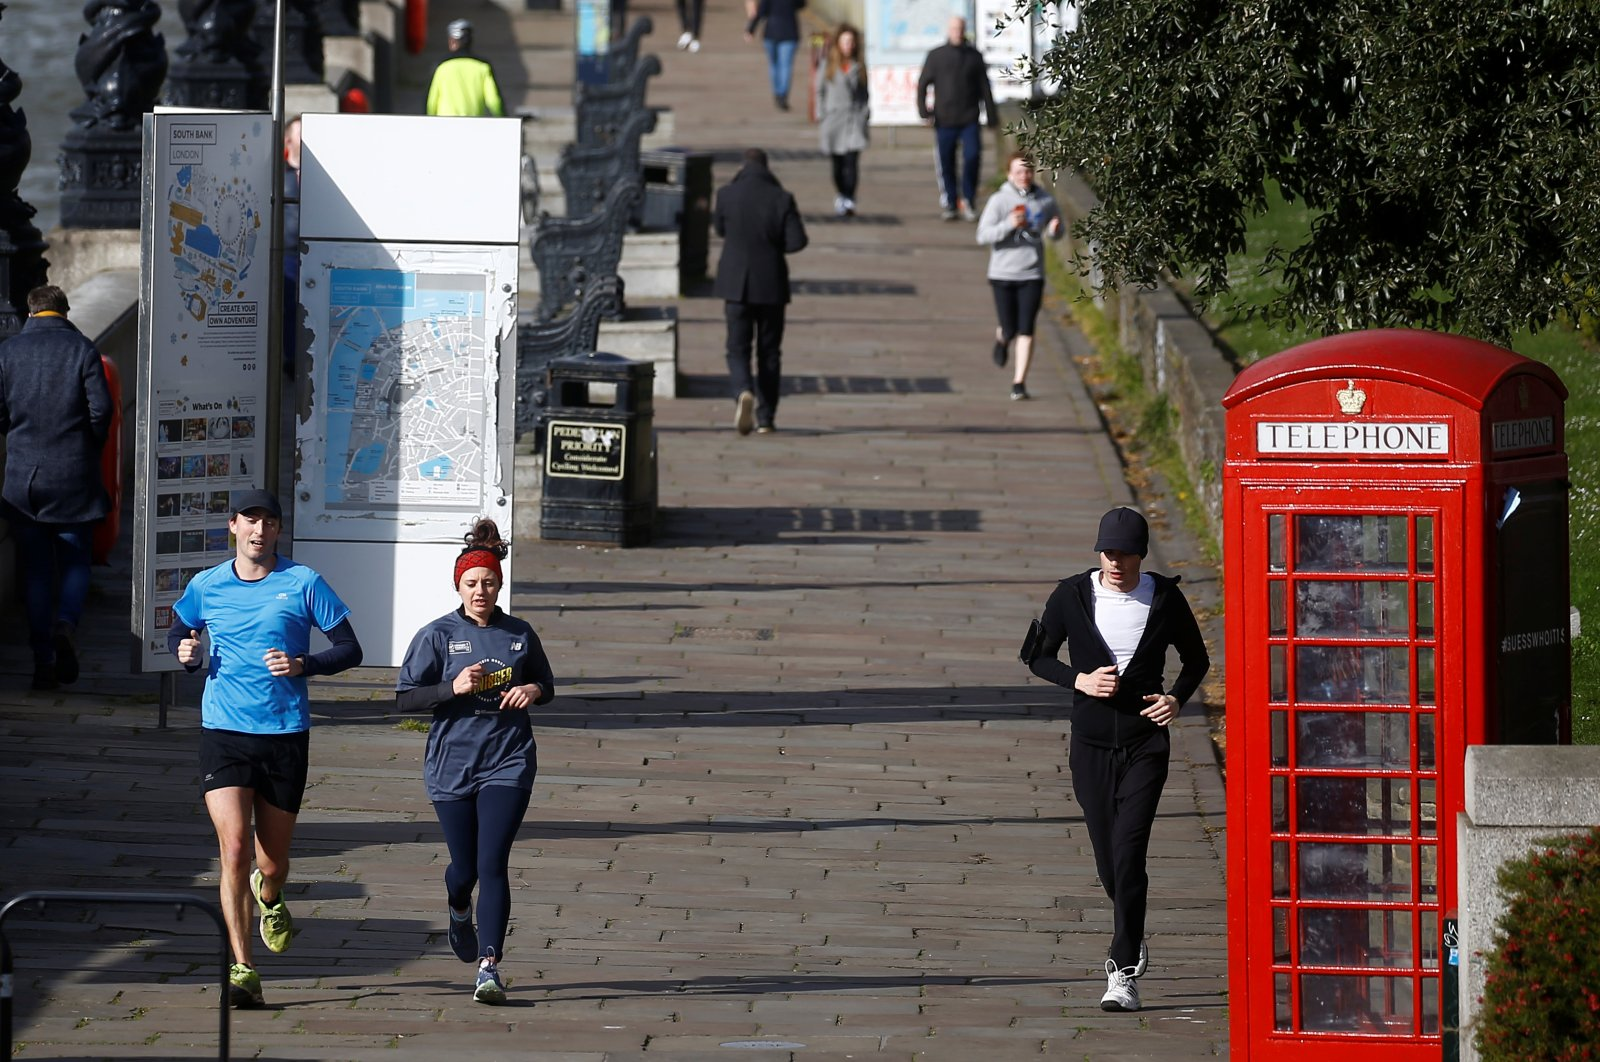 Joggers are seen on South Bank, London, March 29, 2020. (REUTERS Photo)